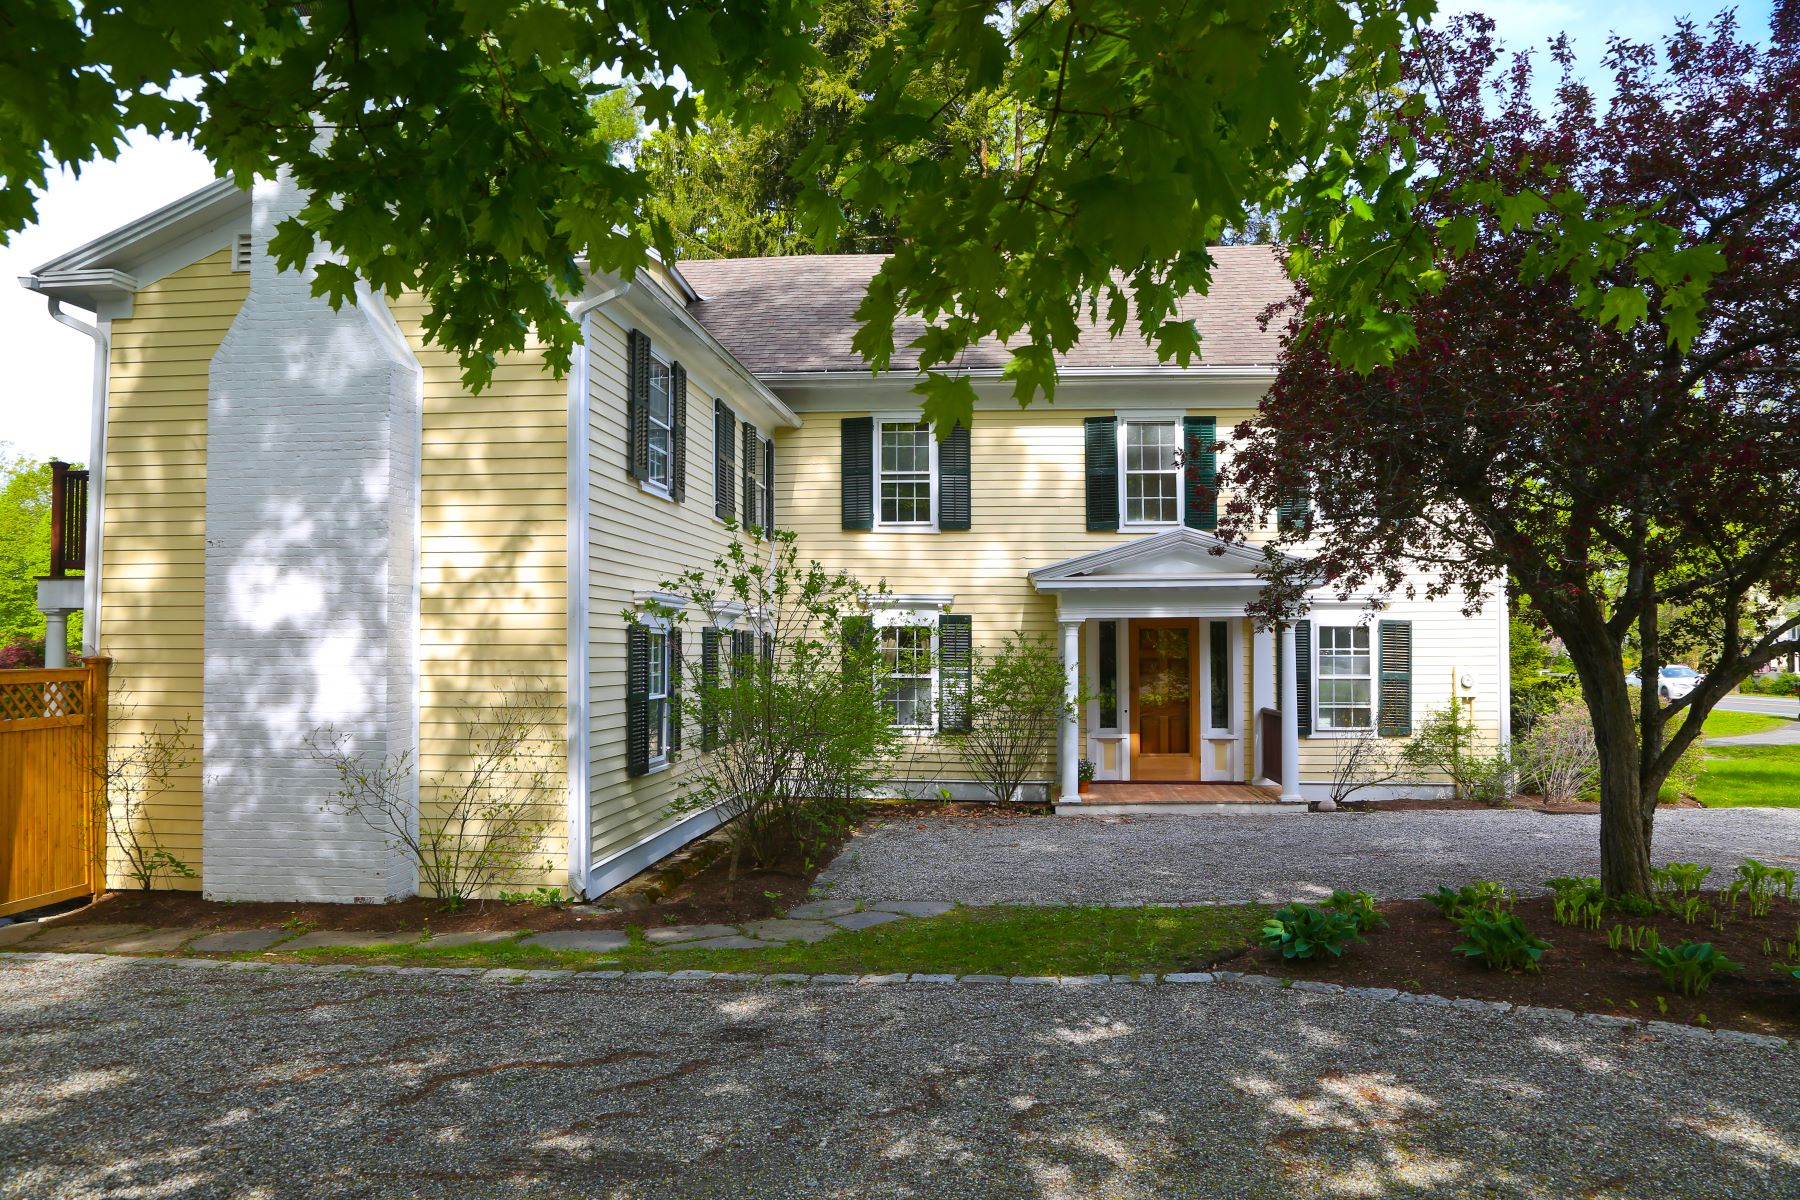 Casa Unifamiliar por un Venta en Iconic Stockbridge Estate Featured in Famous Norman Rockwell Painting 12 Main St Stockbridge, Massachusetts 01262 Estados Unidos